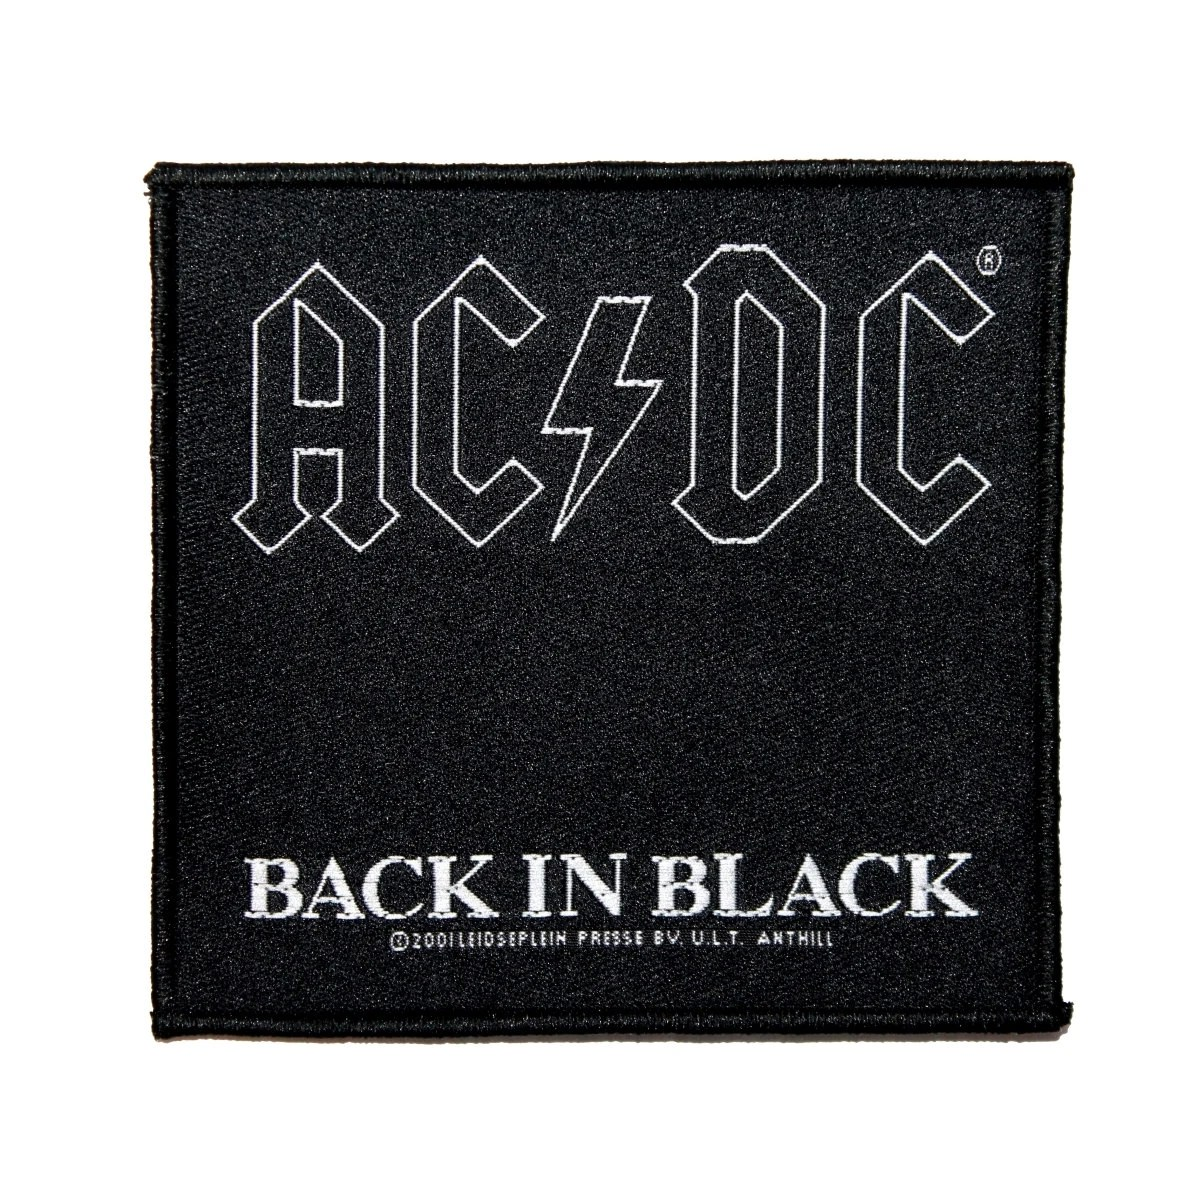 Rock Music Cover Ac Dc Acdc Back In Black Album Cover Patch Hard Rock Music Woven Sew On Applique